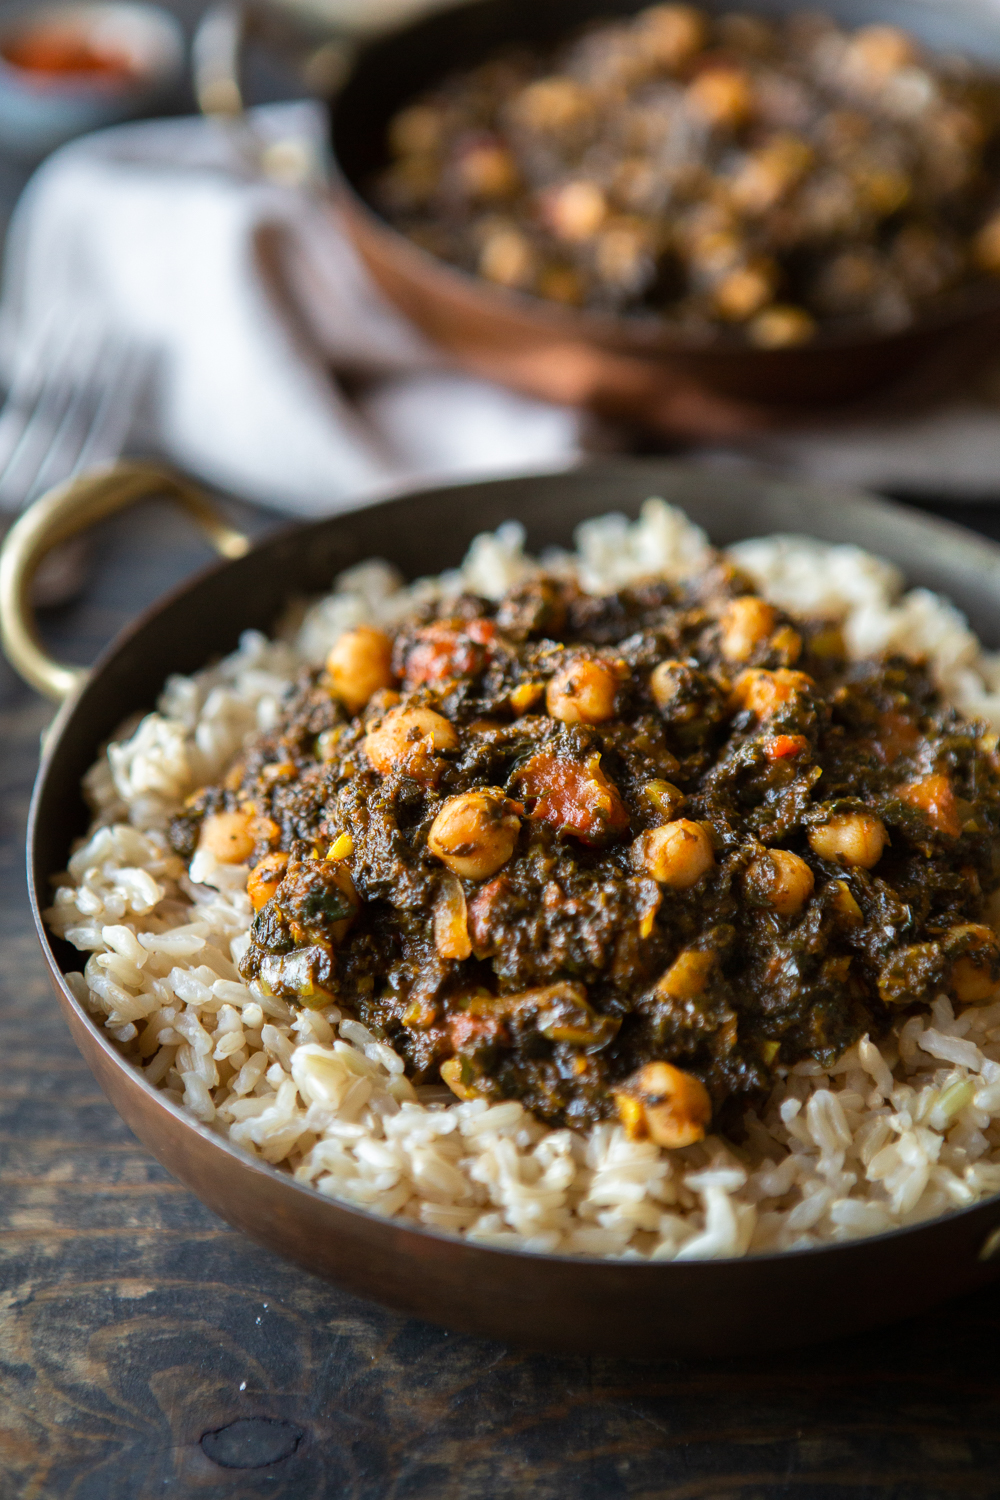 Ghanaian Spinach Stew With Chickpeas Vegan The Minimalist Vegan Recipe In 2020 Ghanaian Food Recipes African Food